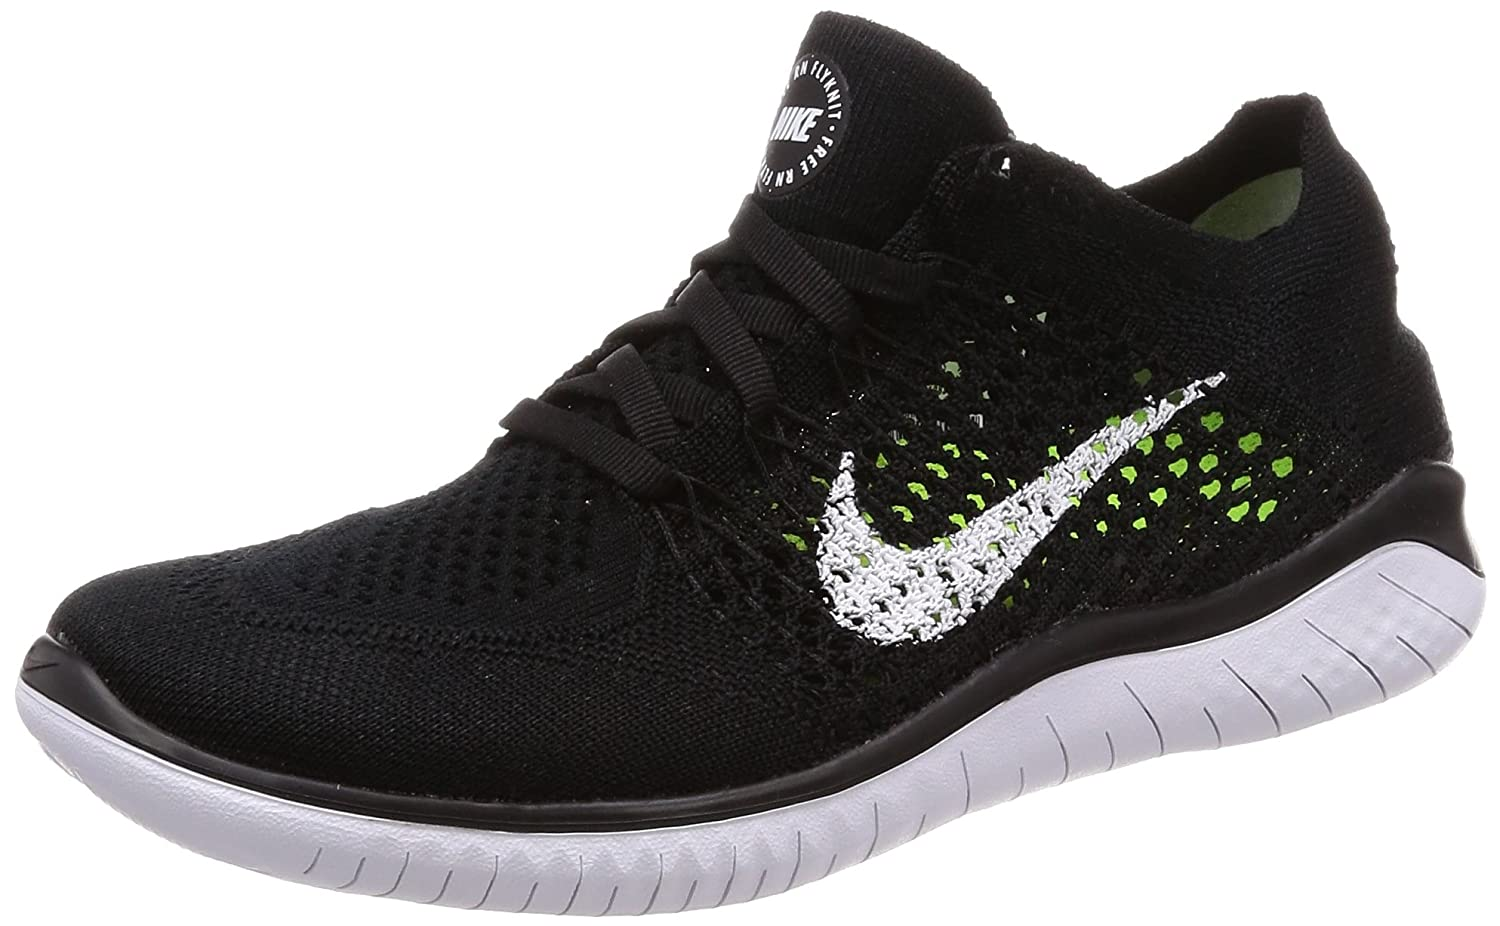 NIKE Women's Free Rn Flyknit 2018 Running Shoe B0041U11XA 8 B(M) US|Black/White